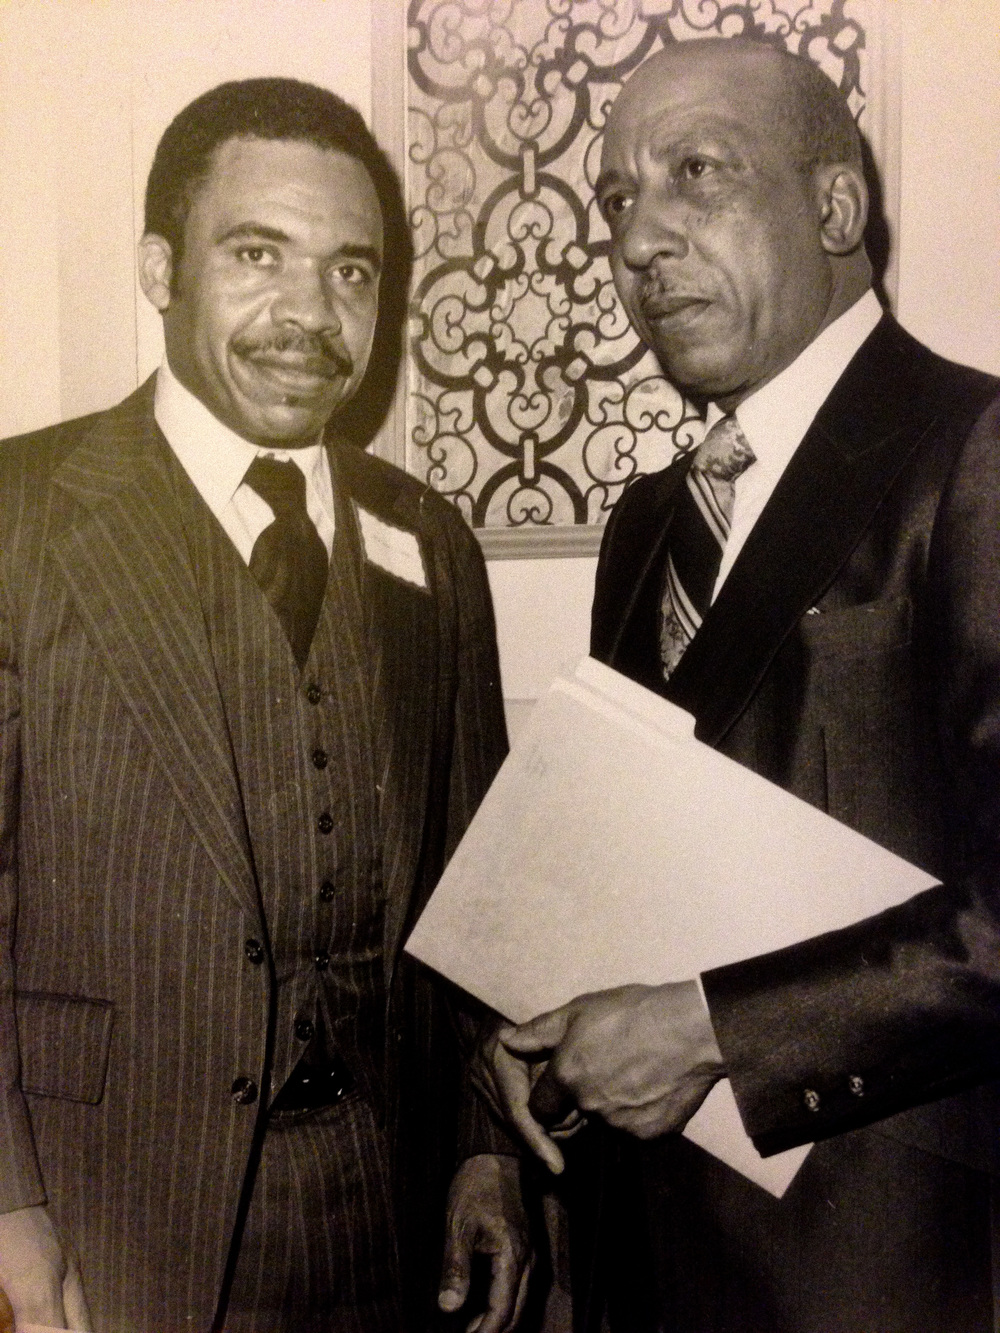 (Left-Kenneth A. Gibson, right- Charles L. Whigham)